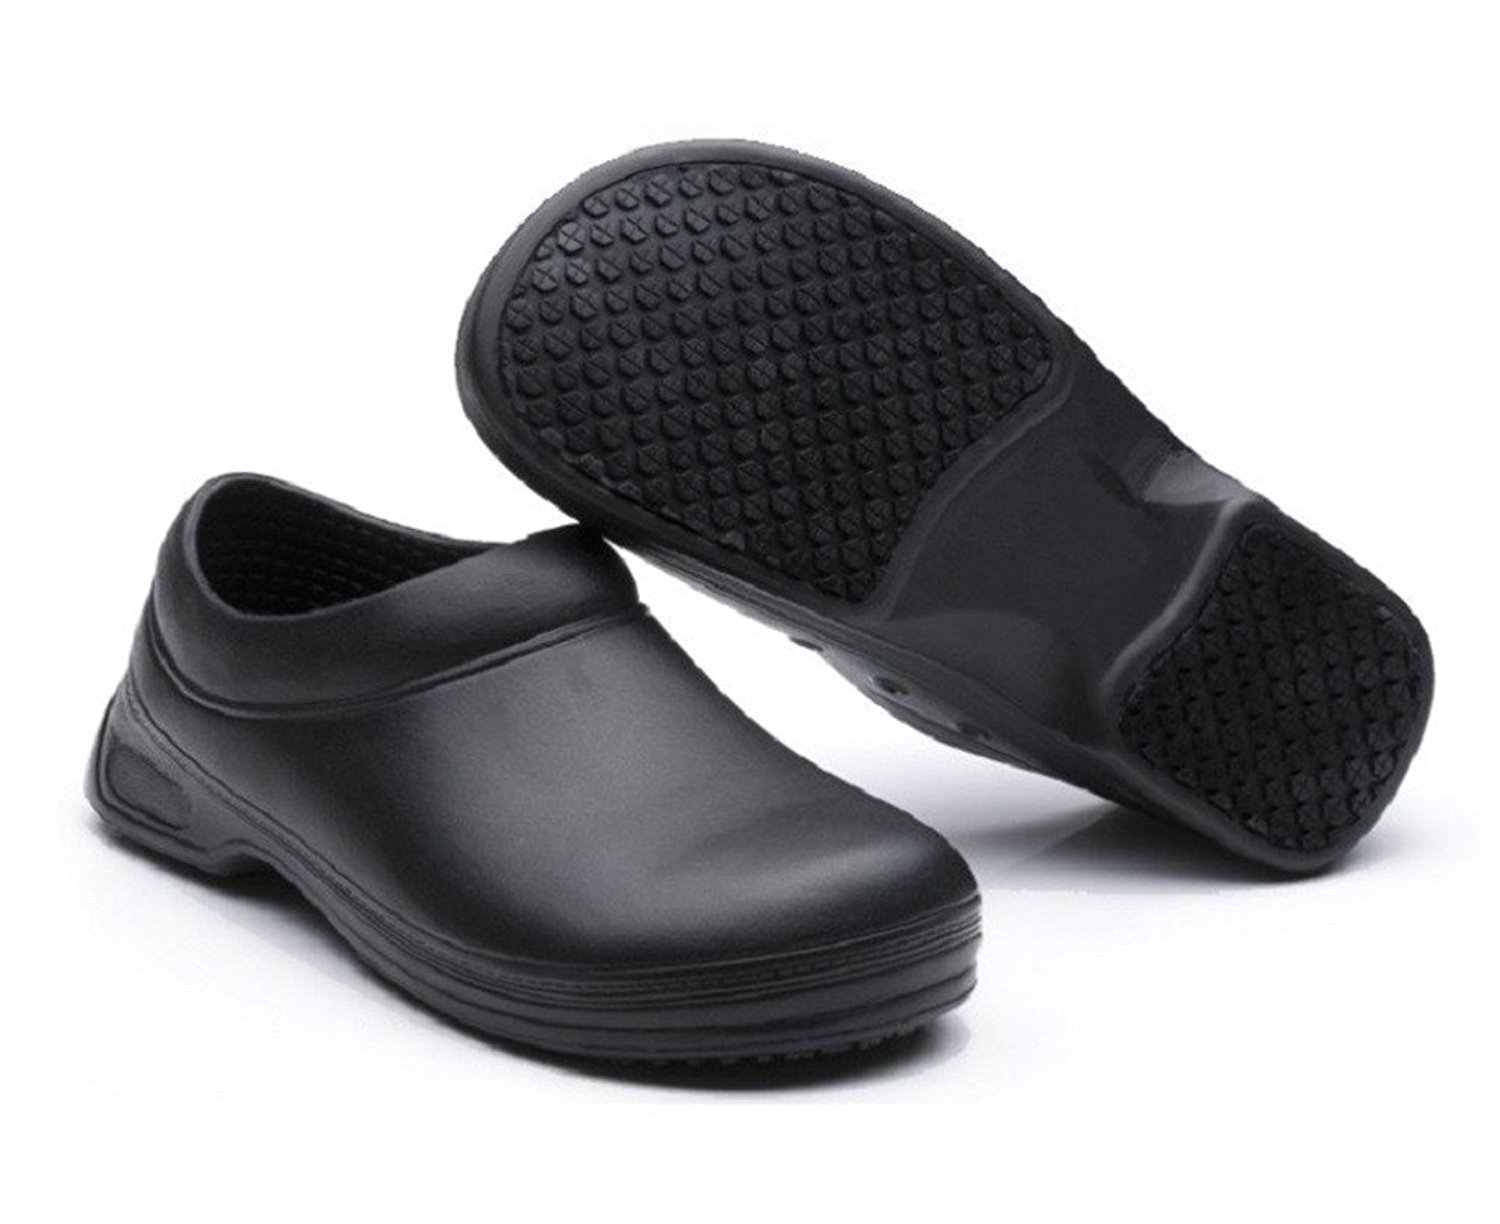 406265825224 Get Quotations · INiceslipper Unisex Chef Shoes Non-Slip Safety Shoes Oil  Water Resistant Casual Flat Shoes